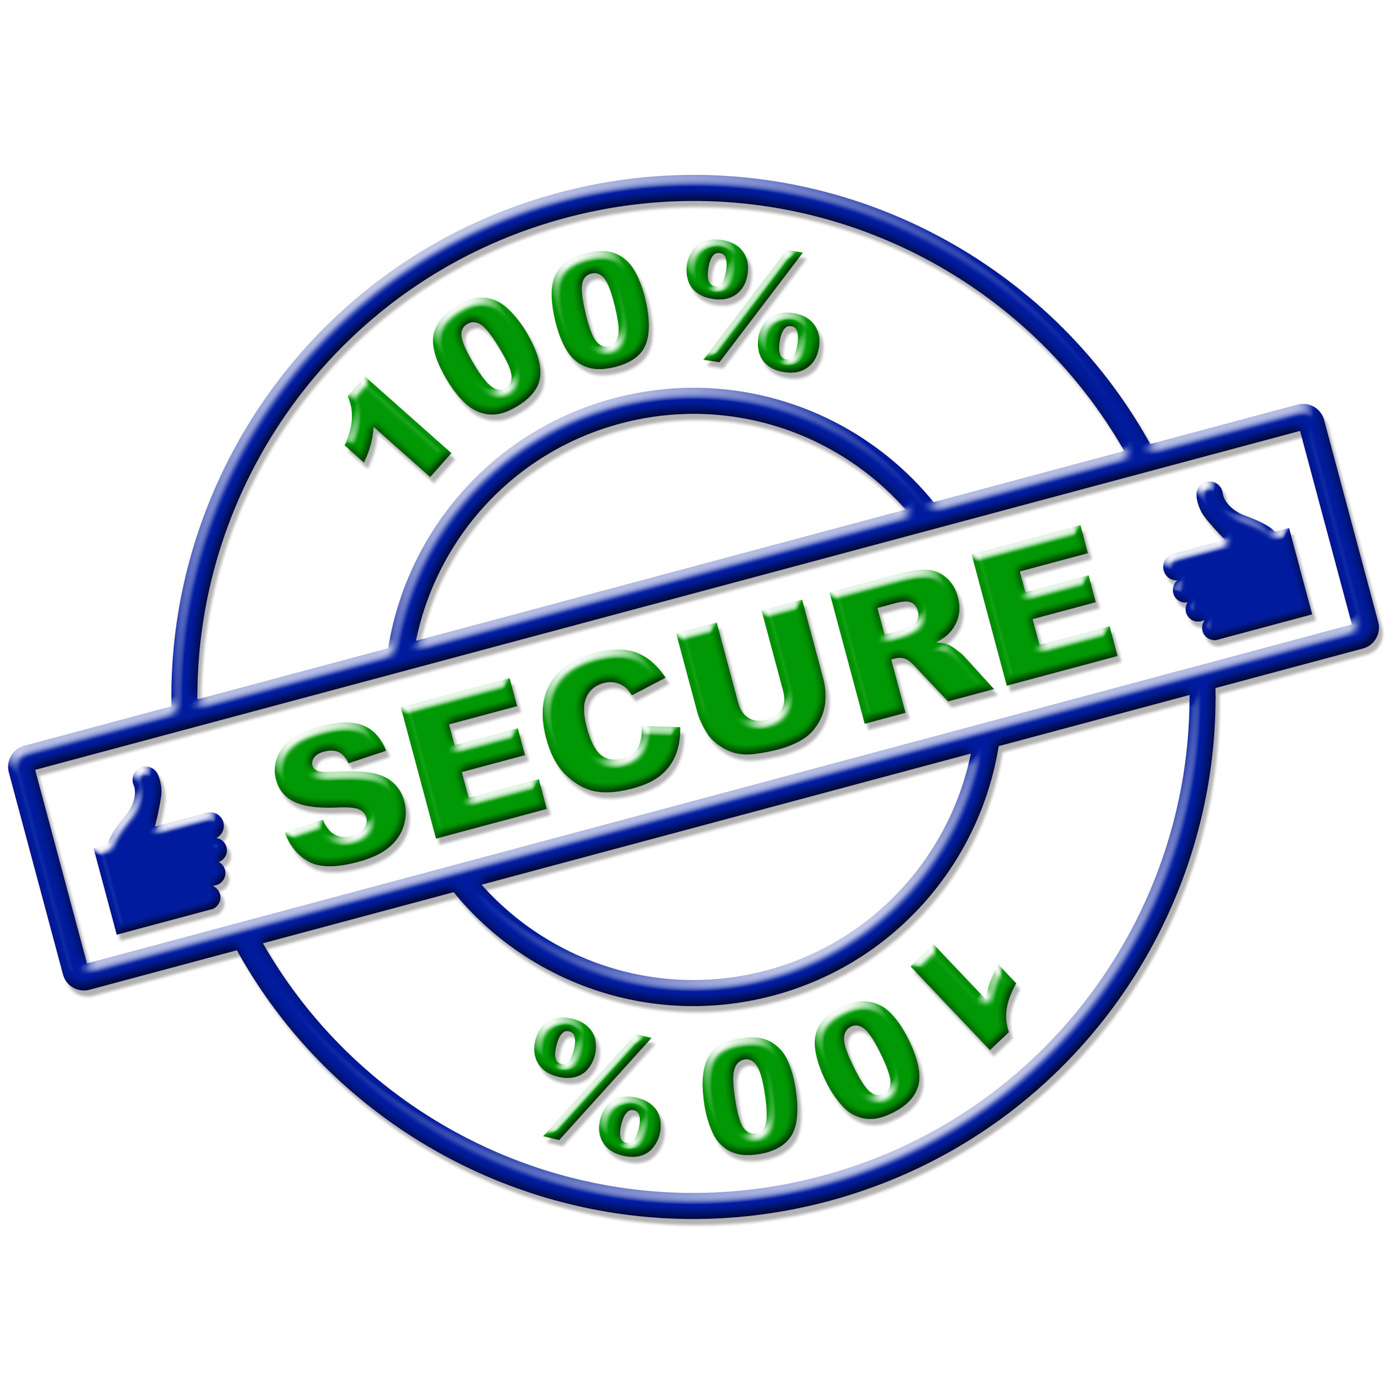 Hundred percent secure indicates login protect and secured photo